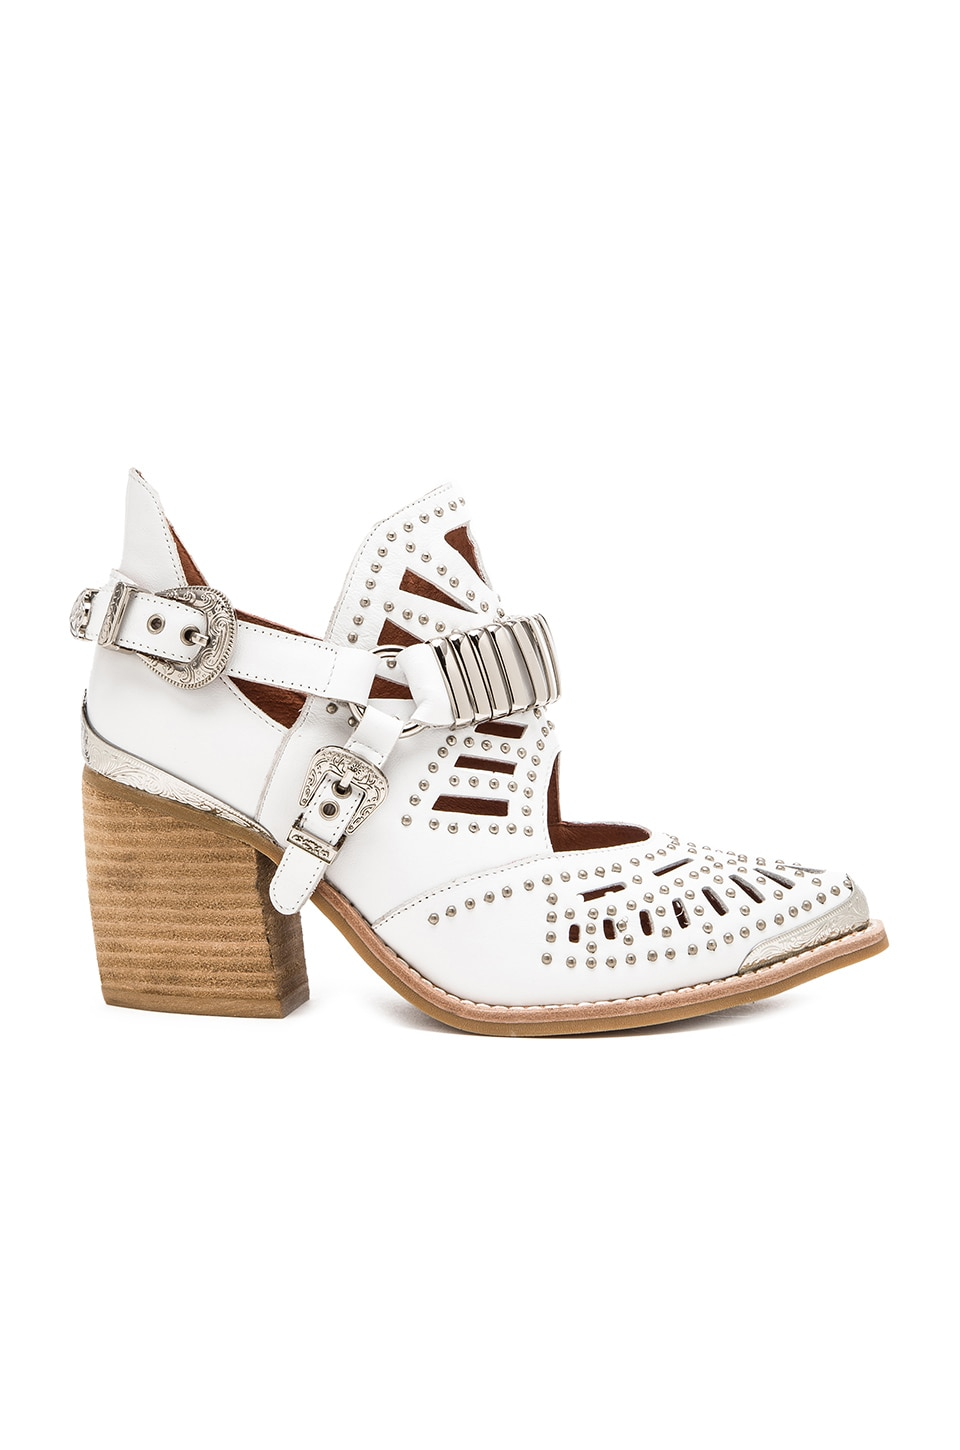 Jeffrey Campbell Calhoun Bootie in White & Silver